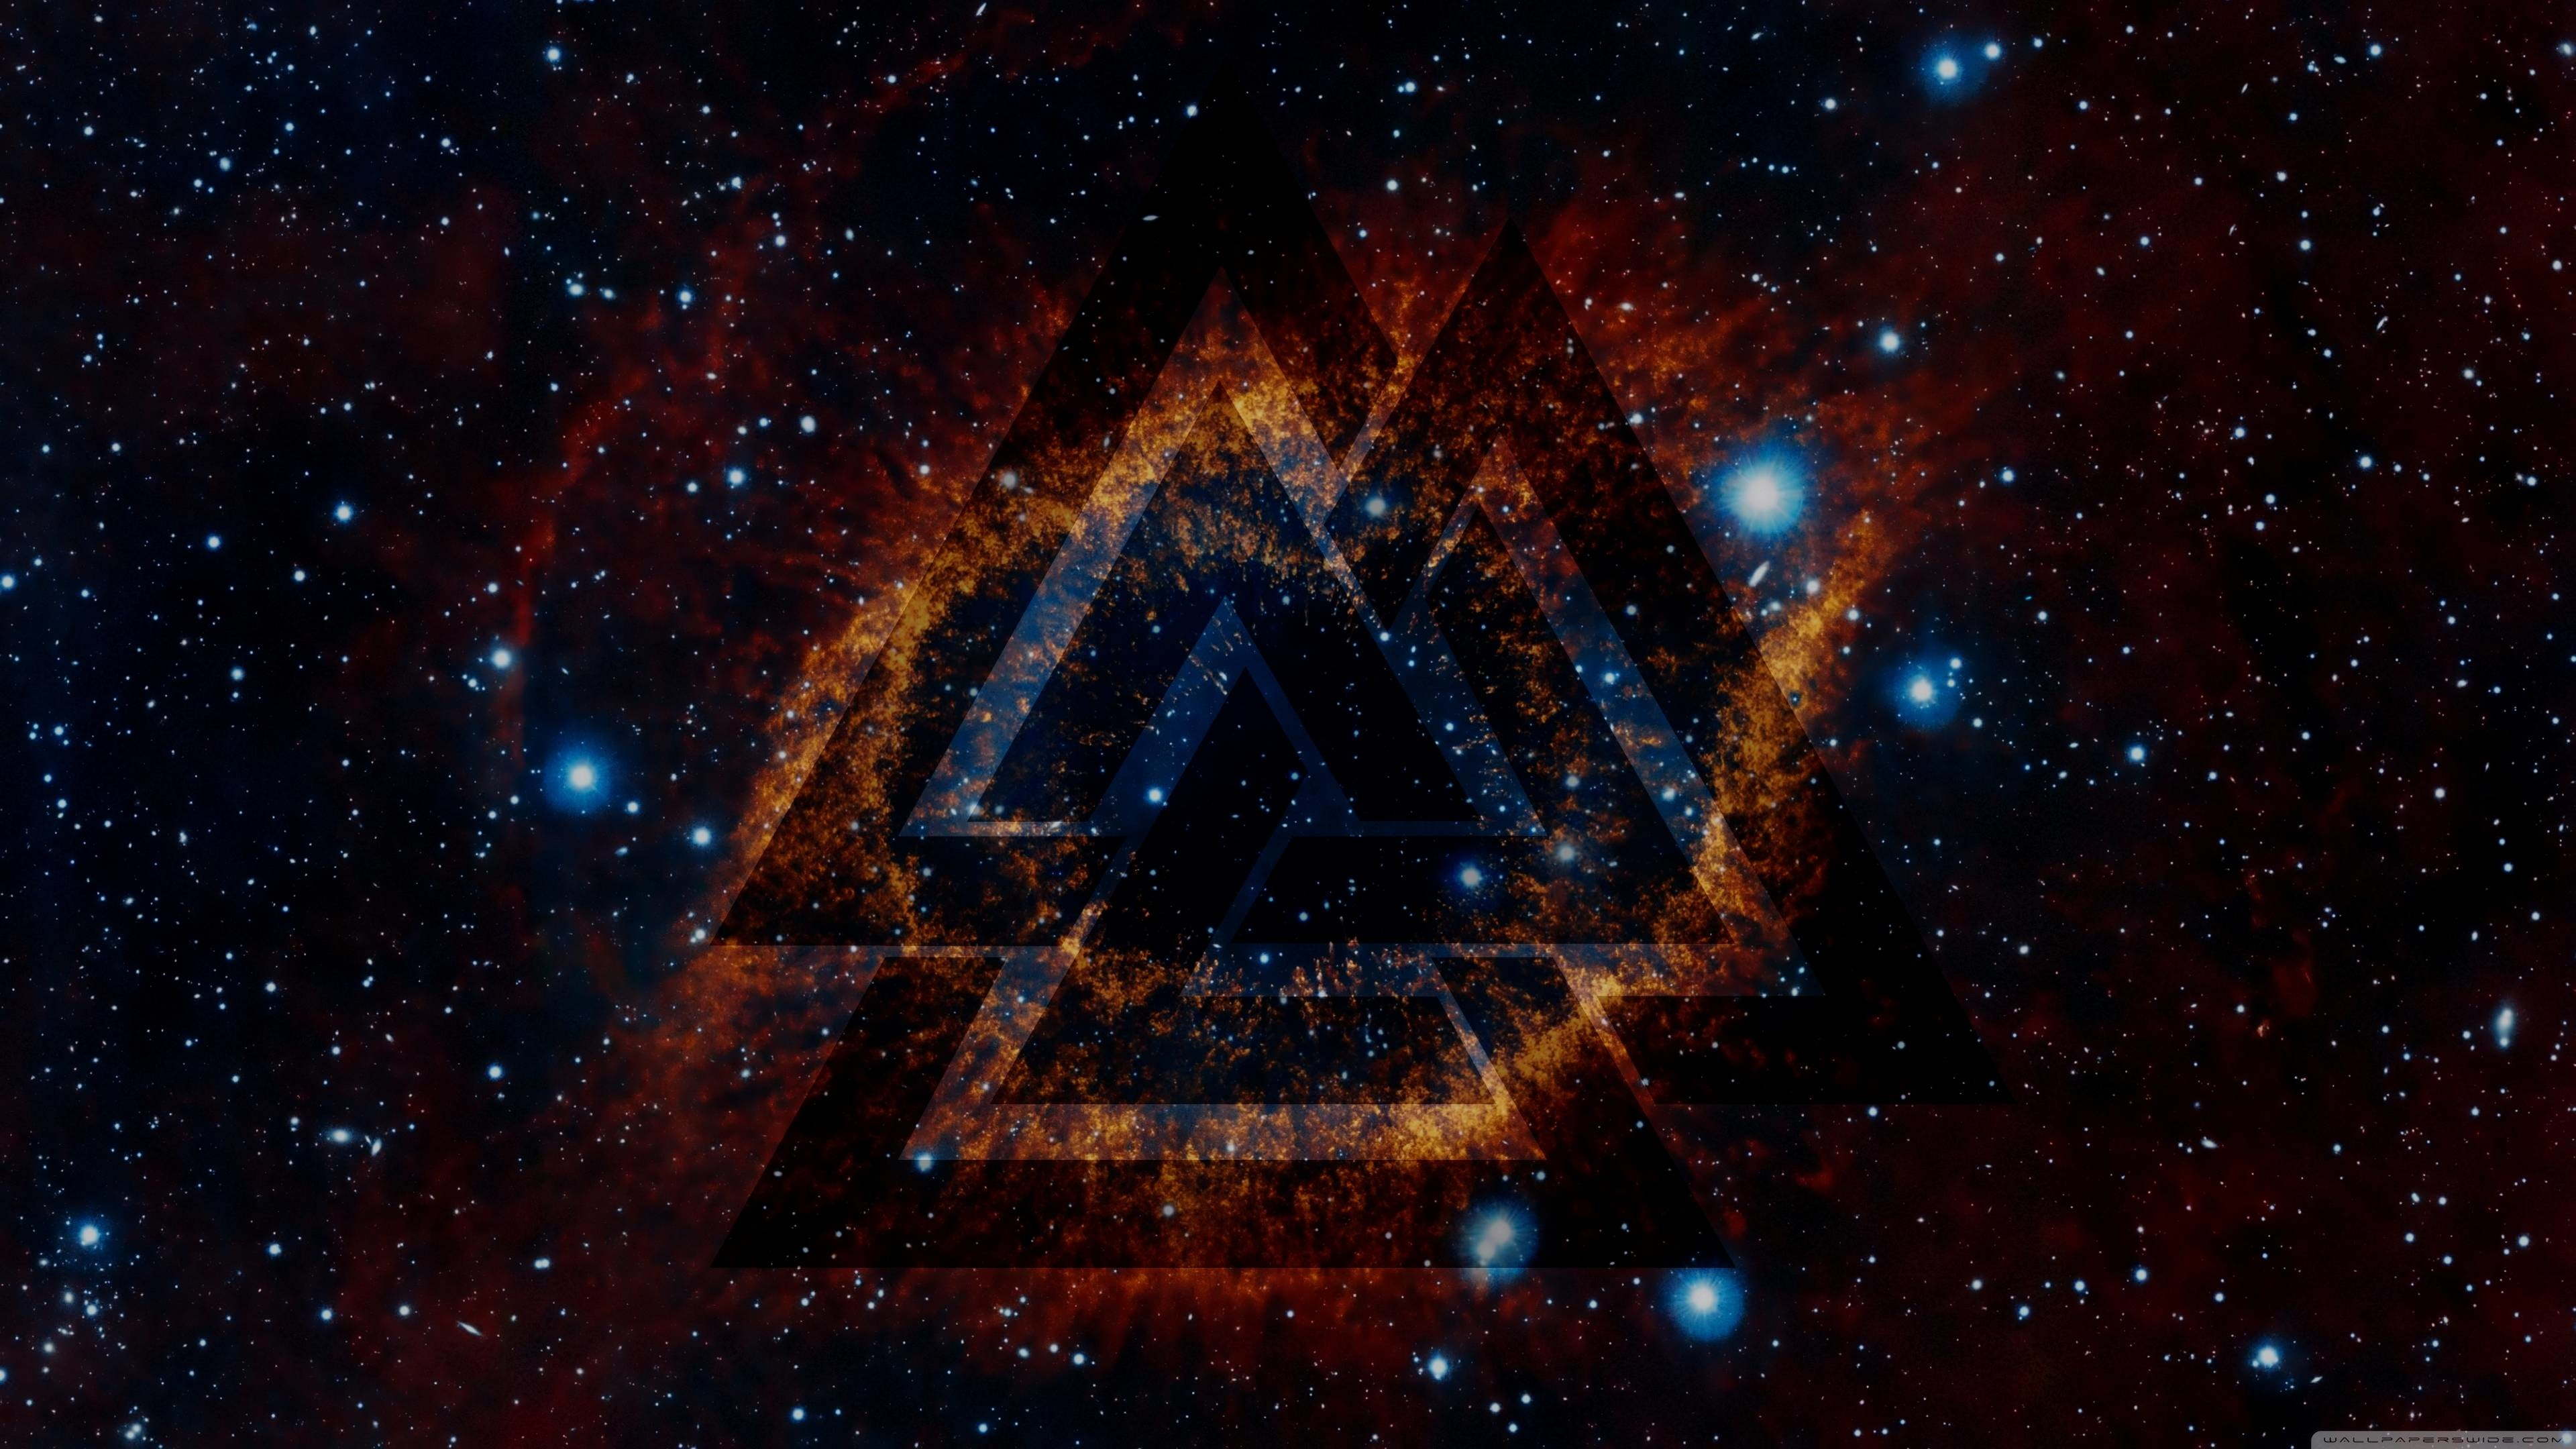 3840x2160 [] I combined a space wallpaper with a valknut overlay, removed  some noise, and made myself a nice wallpaper. I didn't create the two stock  images, ...